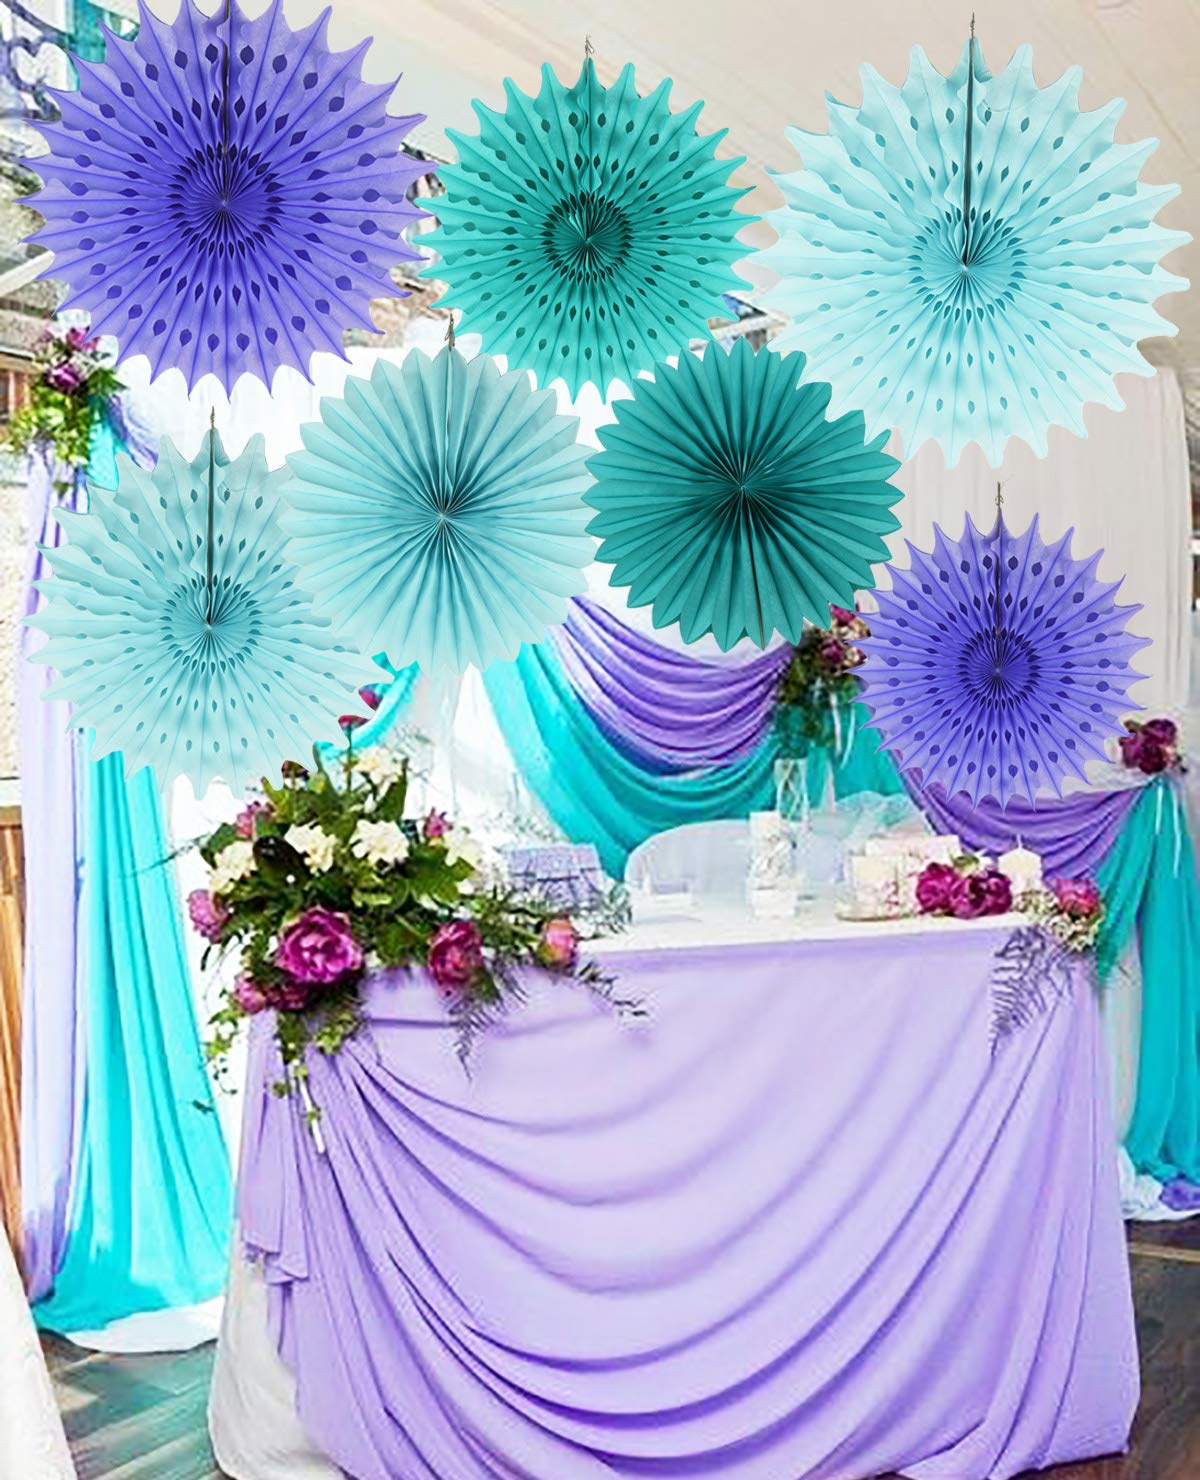 Mermaid Baby Shower Decorations Aqua Blue Teal Purple Tissue Paper Fan Summer Party Beach Tropical Under The Sea Pom